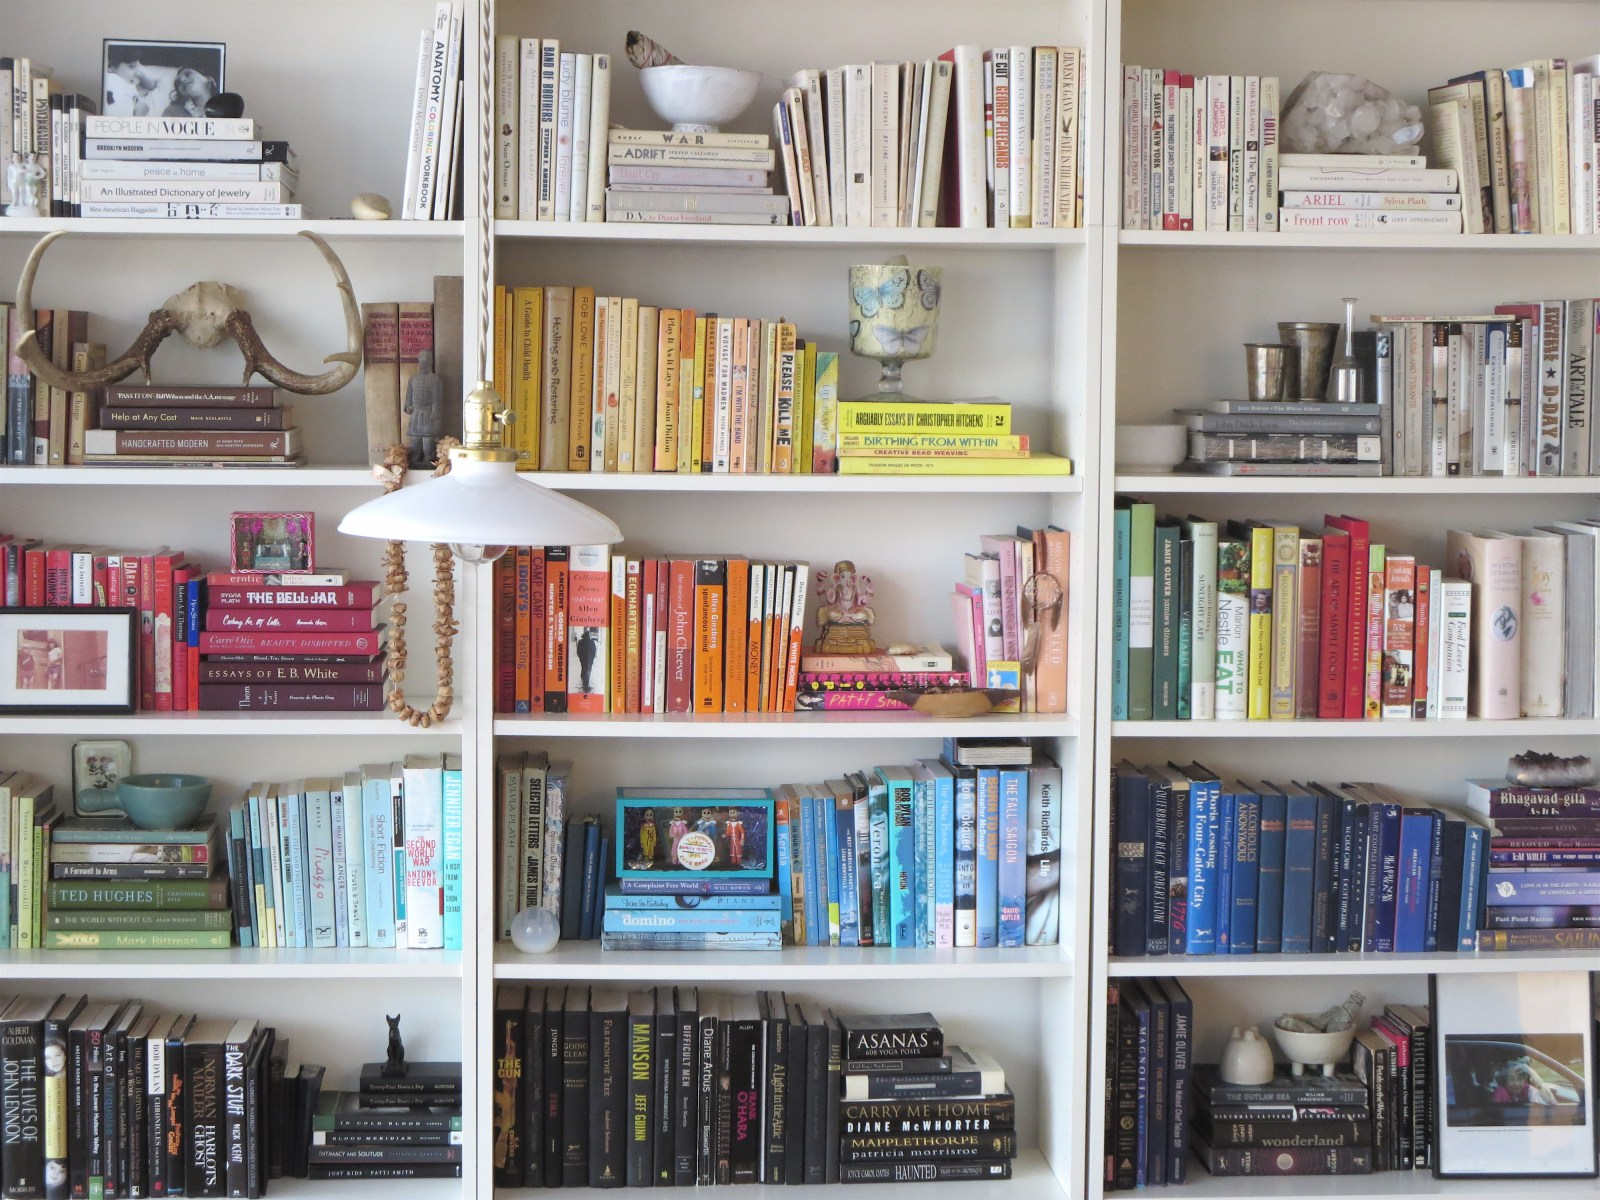 The Best Books For The College Student's Soul